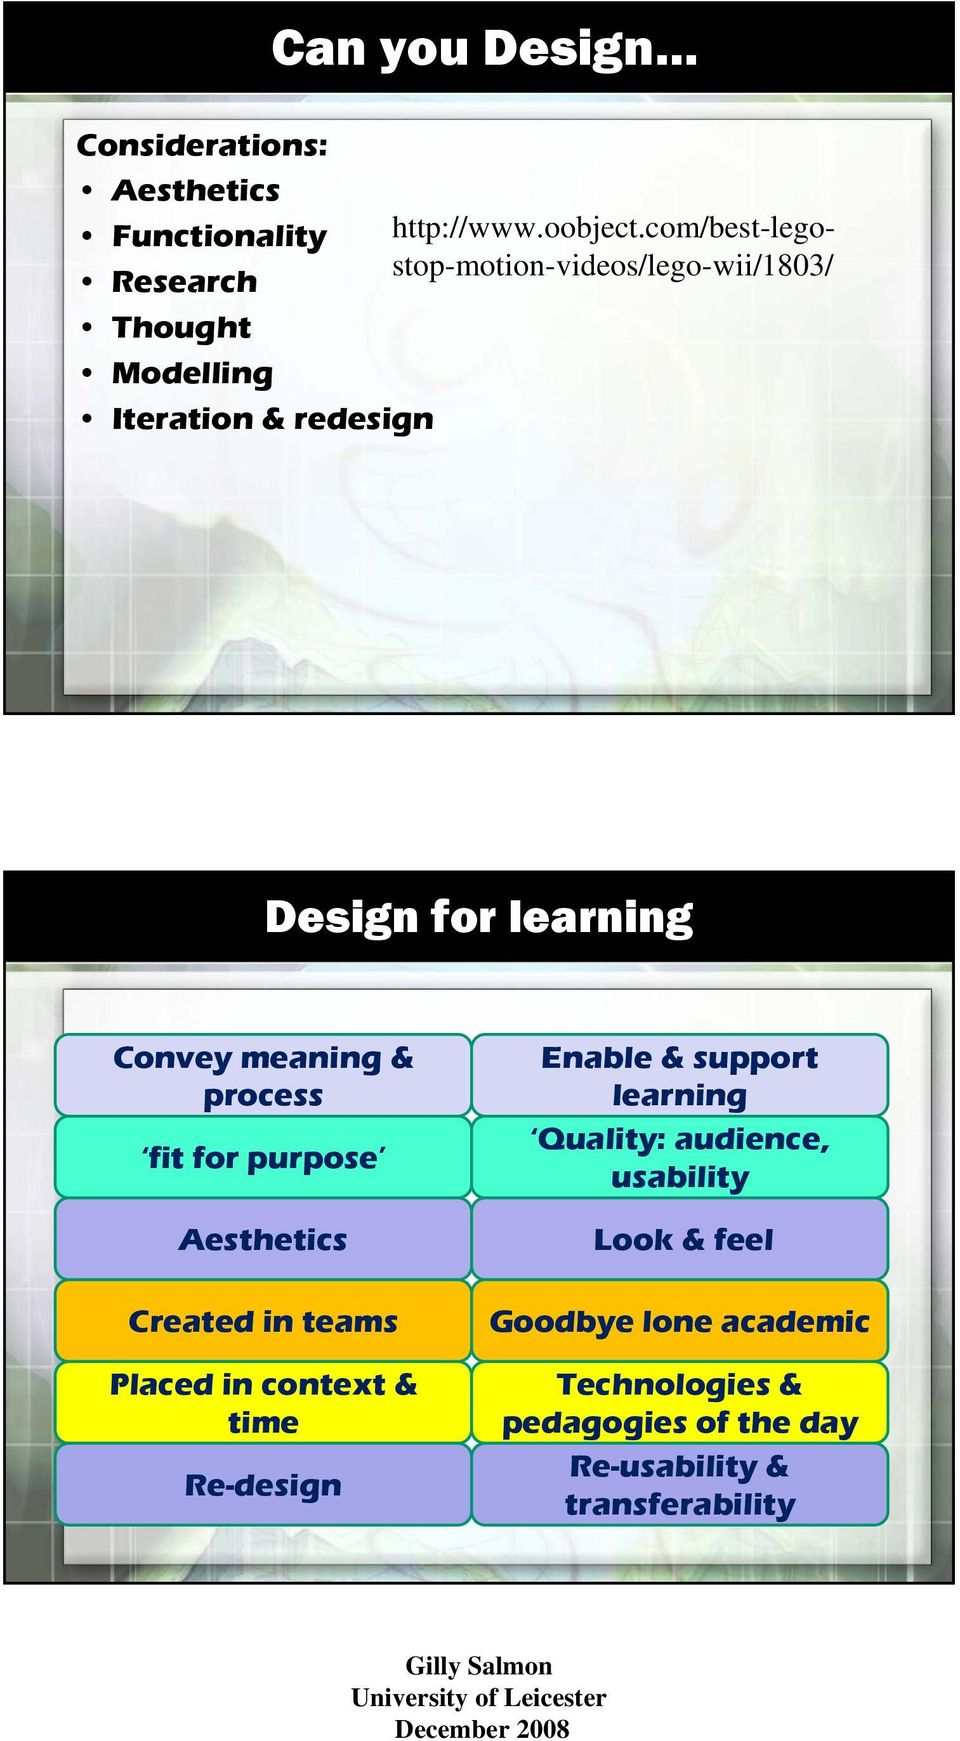 learning Convey meaning & process fit for purpose Aesthetics Created in teams Placed in context & time Re-design